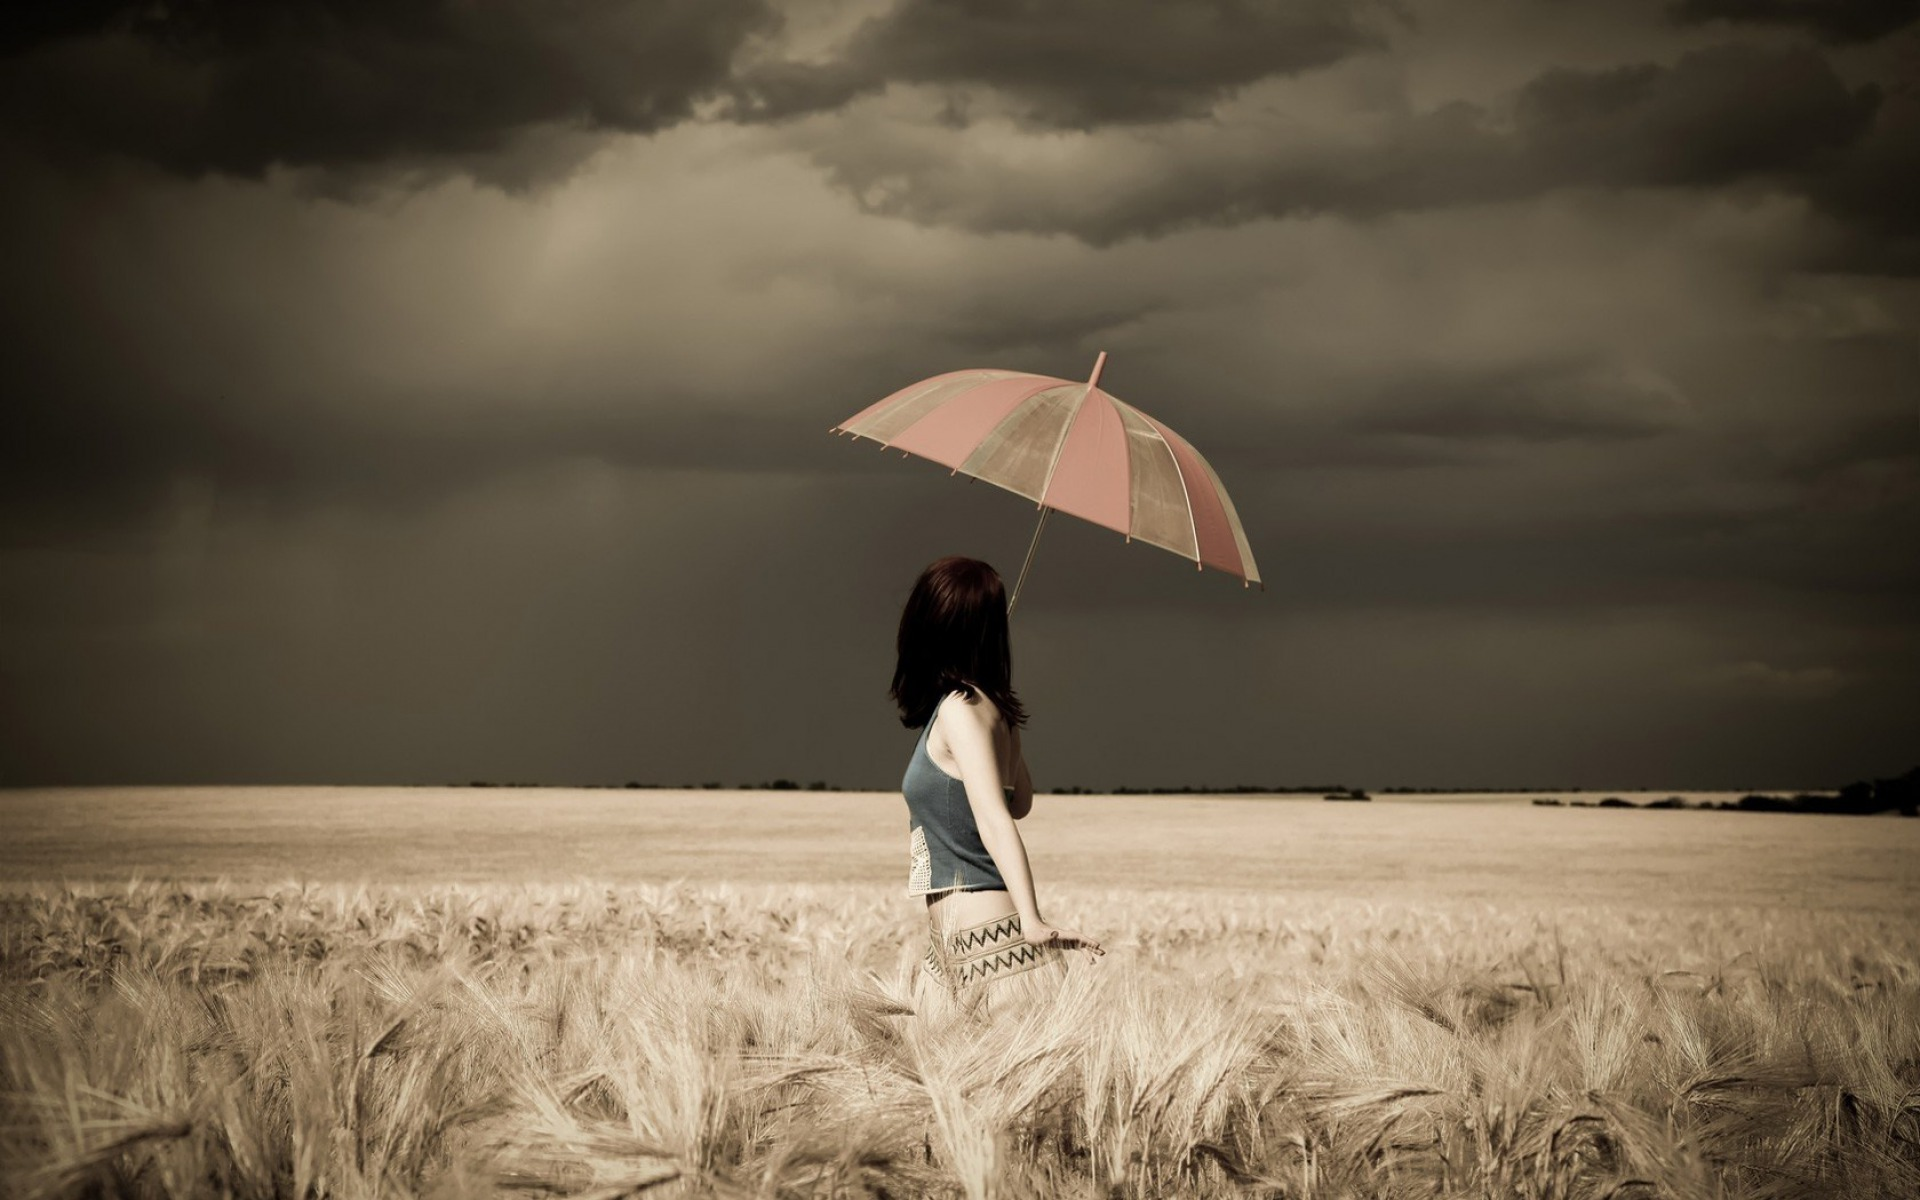 3d Falling Leaves Animated Wallpaper Woman Umbrella Field Stormy Wallpapers Woman Umbrella